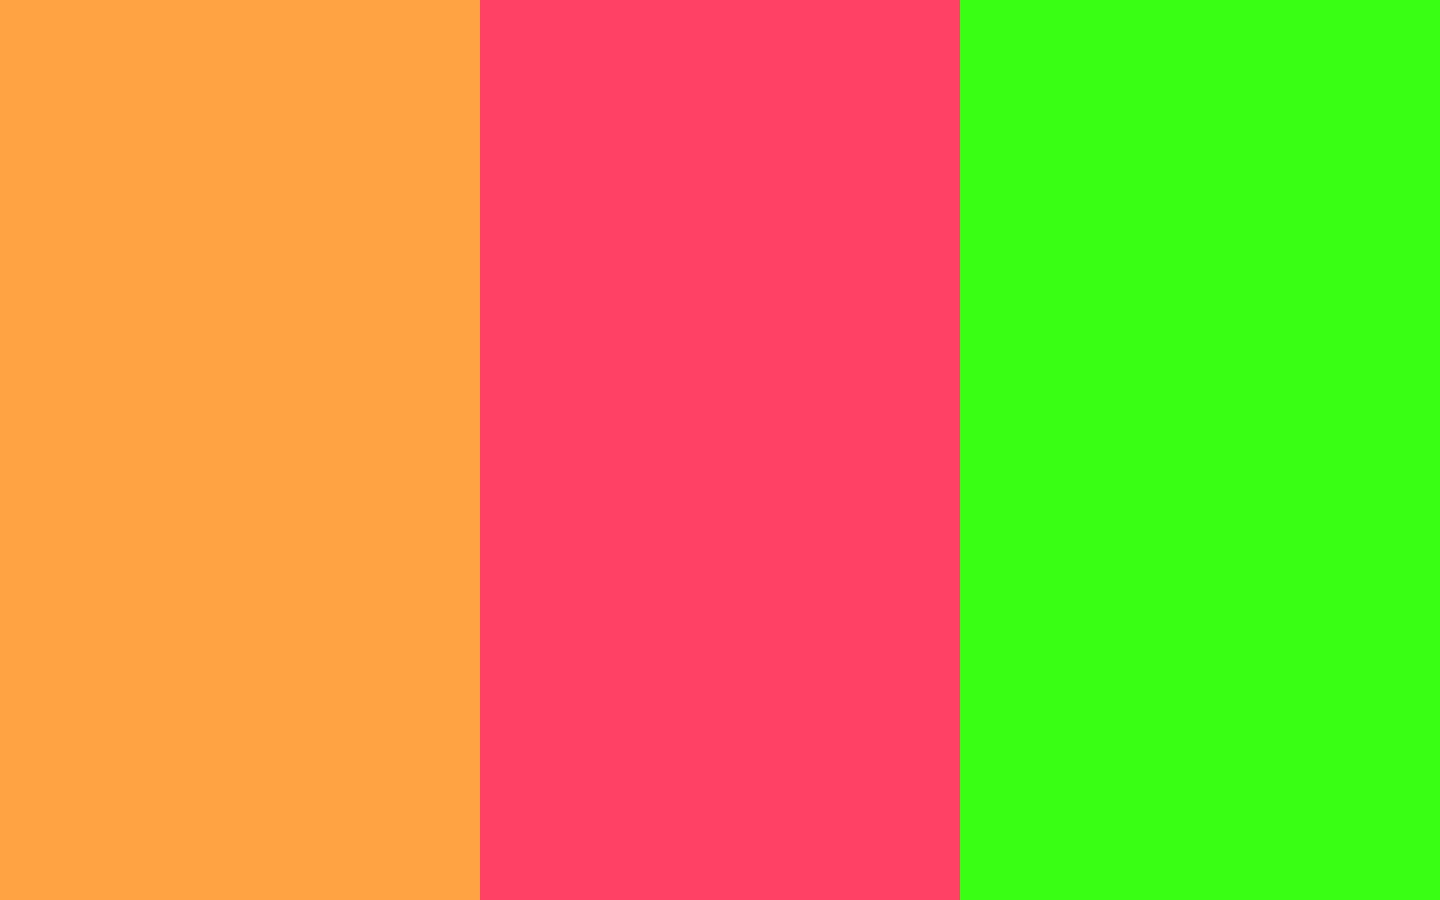 Neon Red Background Solid Neon carrot neon fuchsia and 1440x900